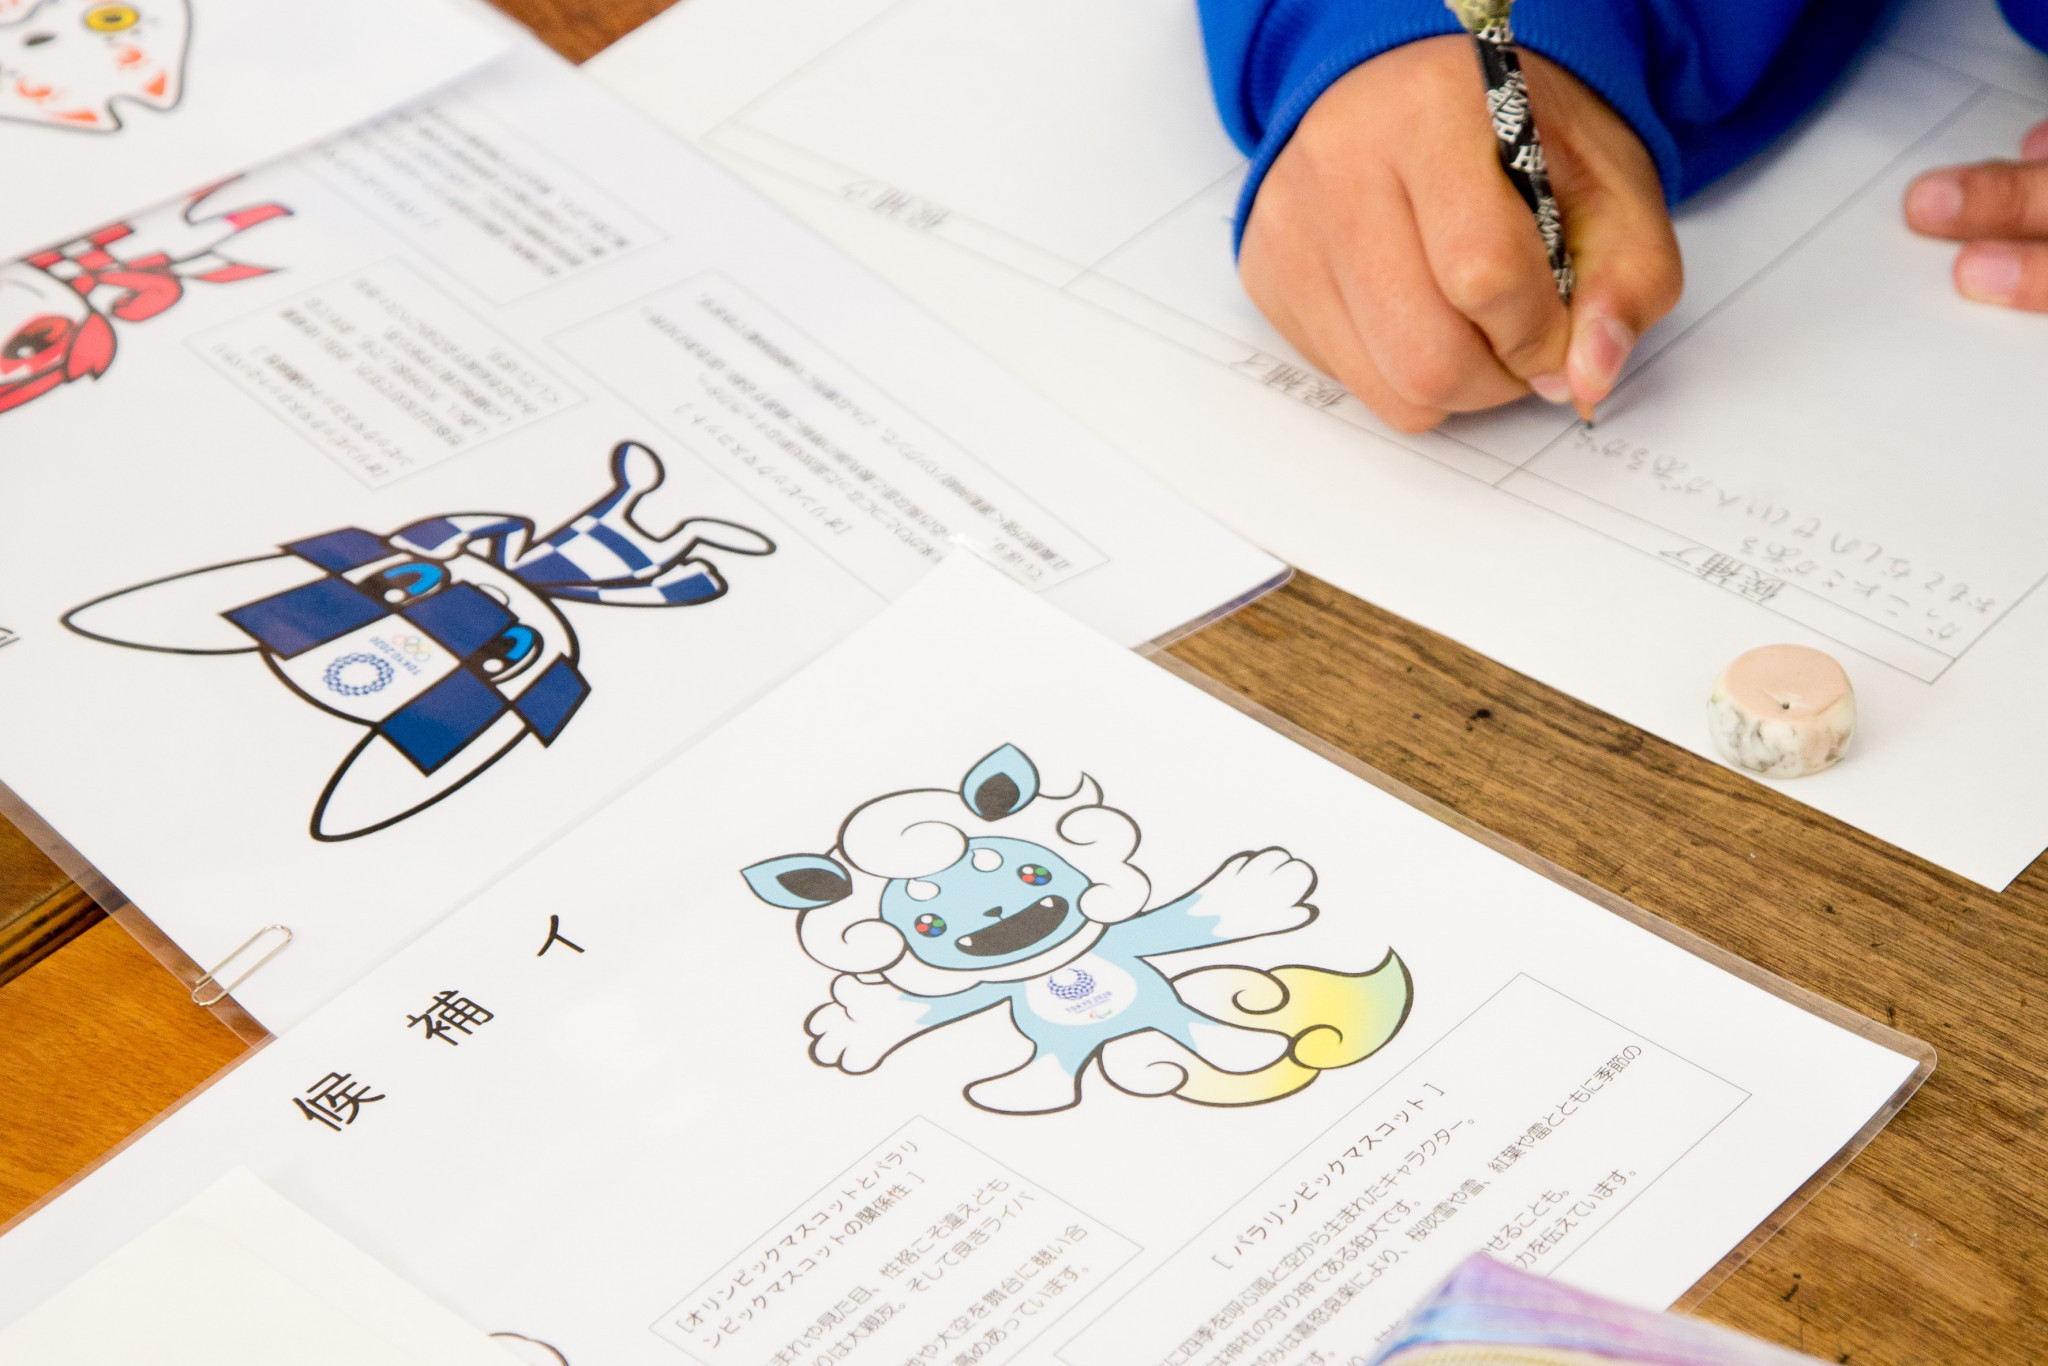 Schools have been given proposed lesson plans to incorporate the mascot selection process ©Tokyo 2020